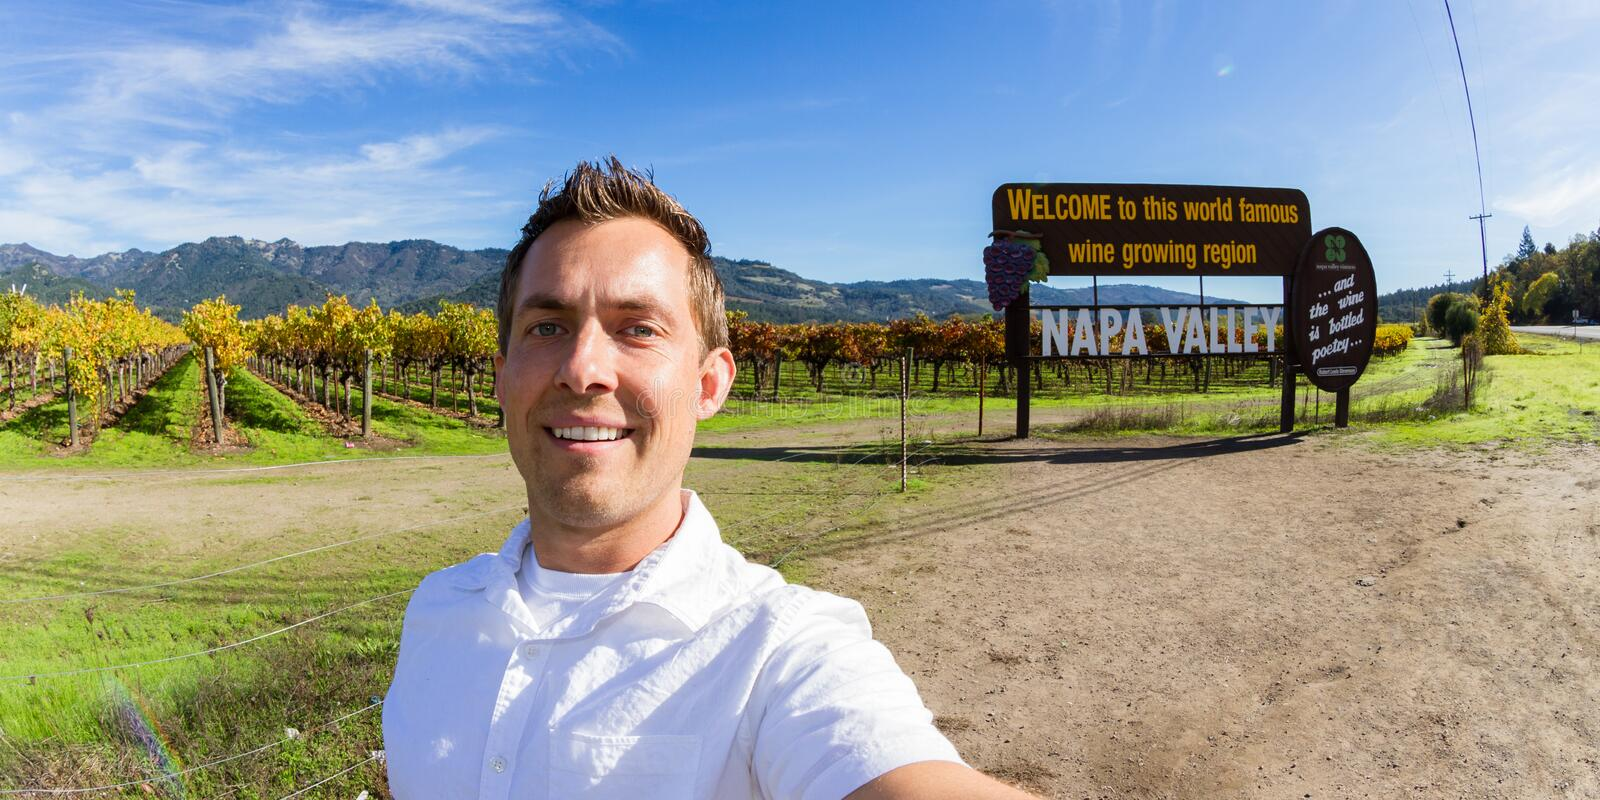 Selfie dans Napa Valley photos stock